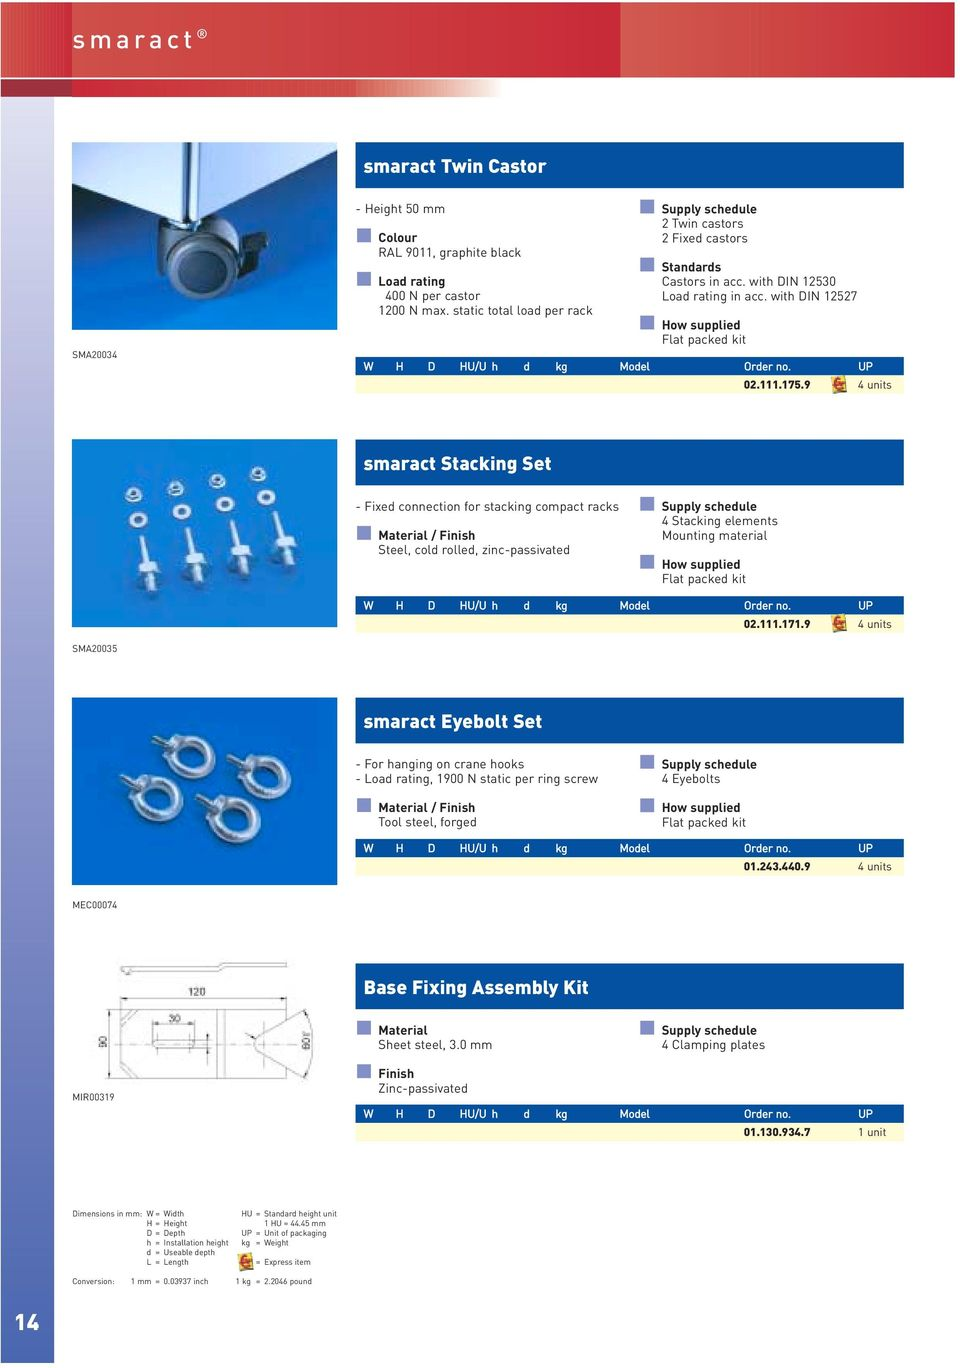 111.171.9 4 units SMA20035 smaract Eyebolt Set - For hanging on crane hooks - Load rating, 1900 N static per ring screw Tool steel, forged 4 Eyebolts 01.243.440.